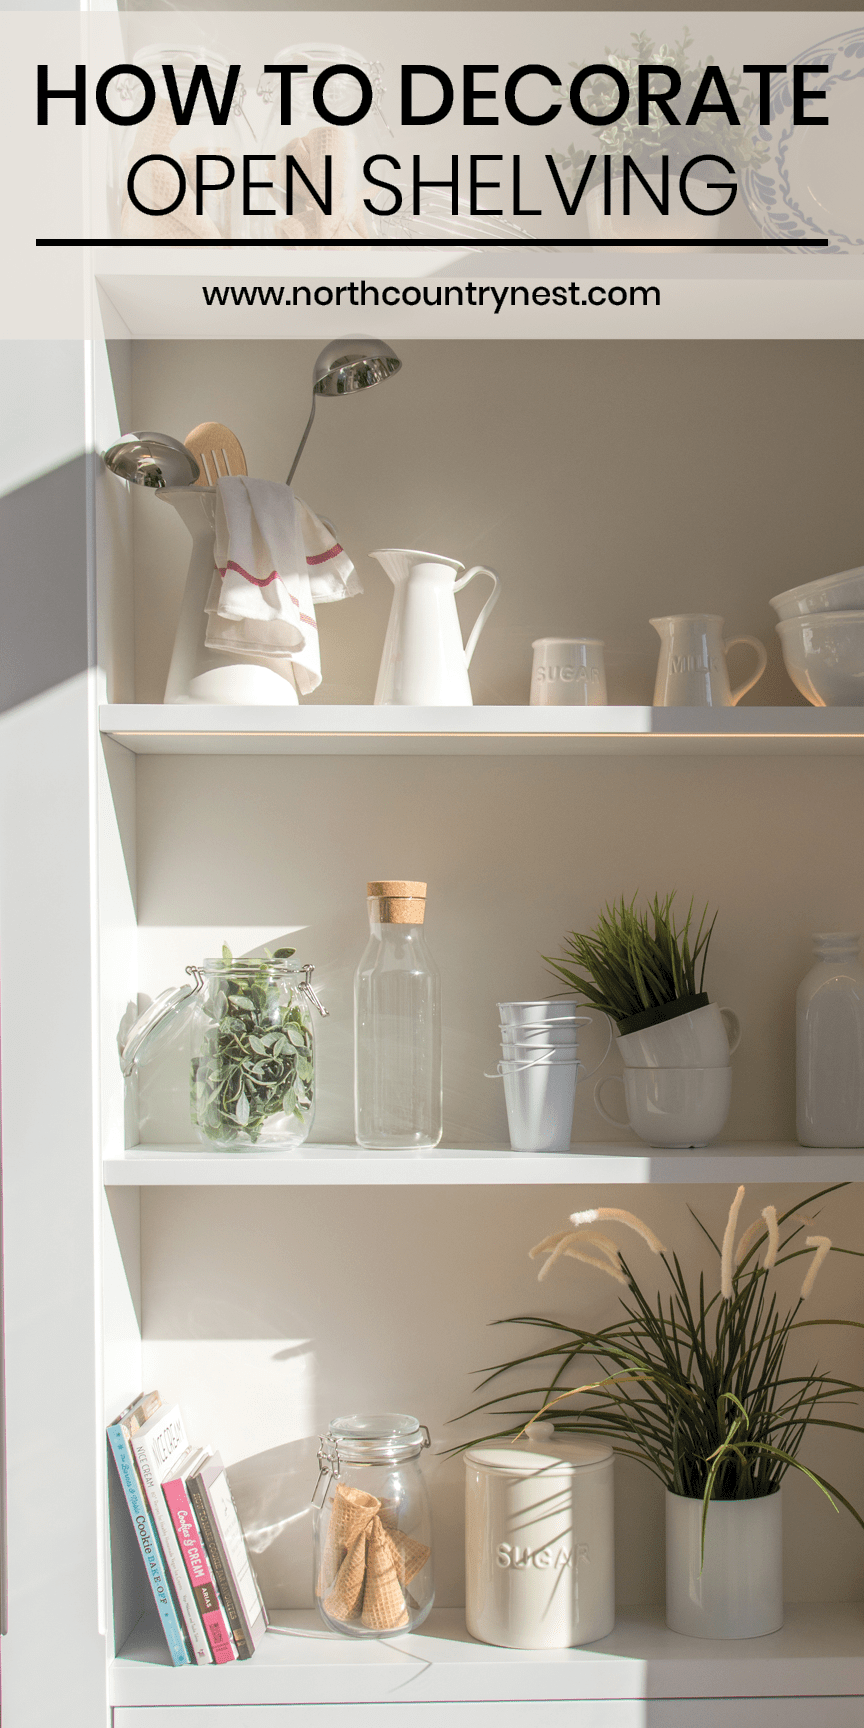 How To Decorate Open Shelving In The Kitchen